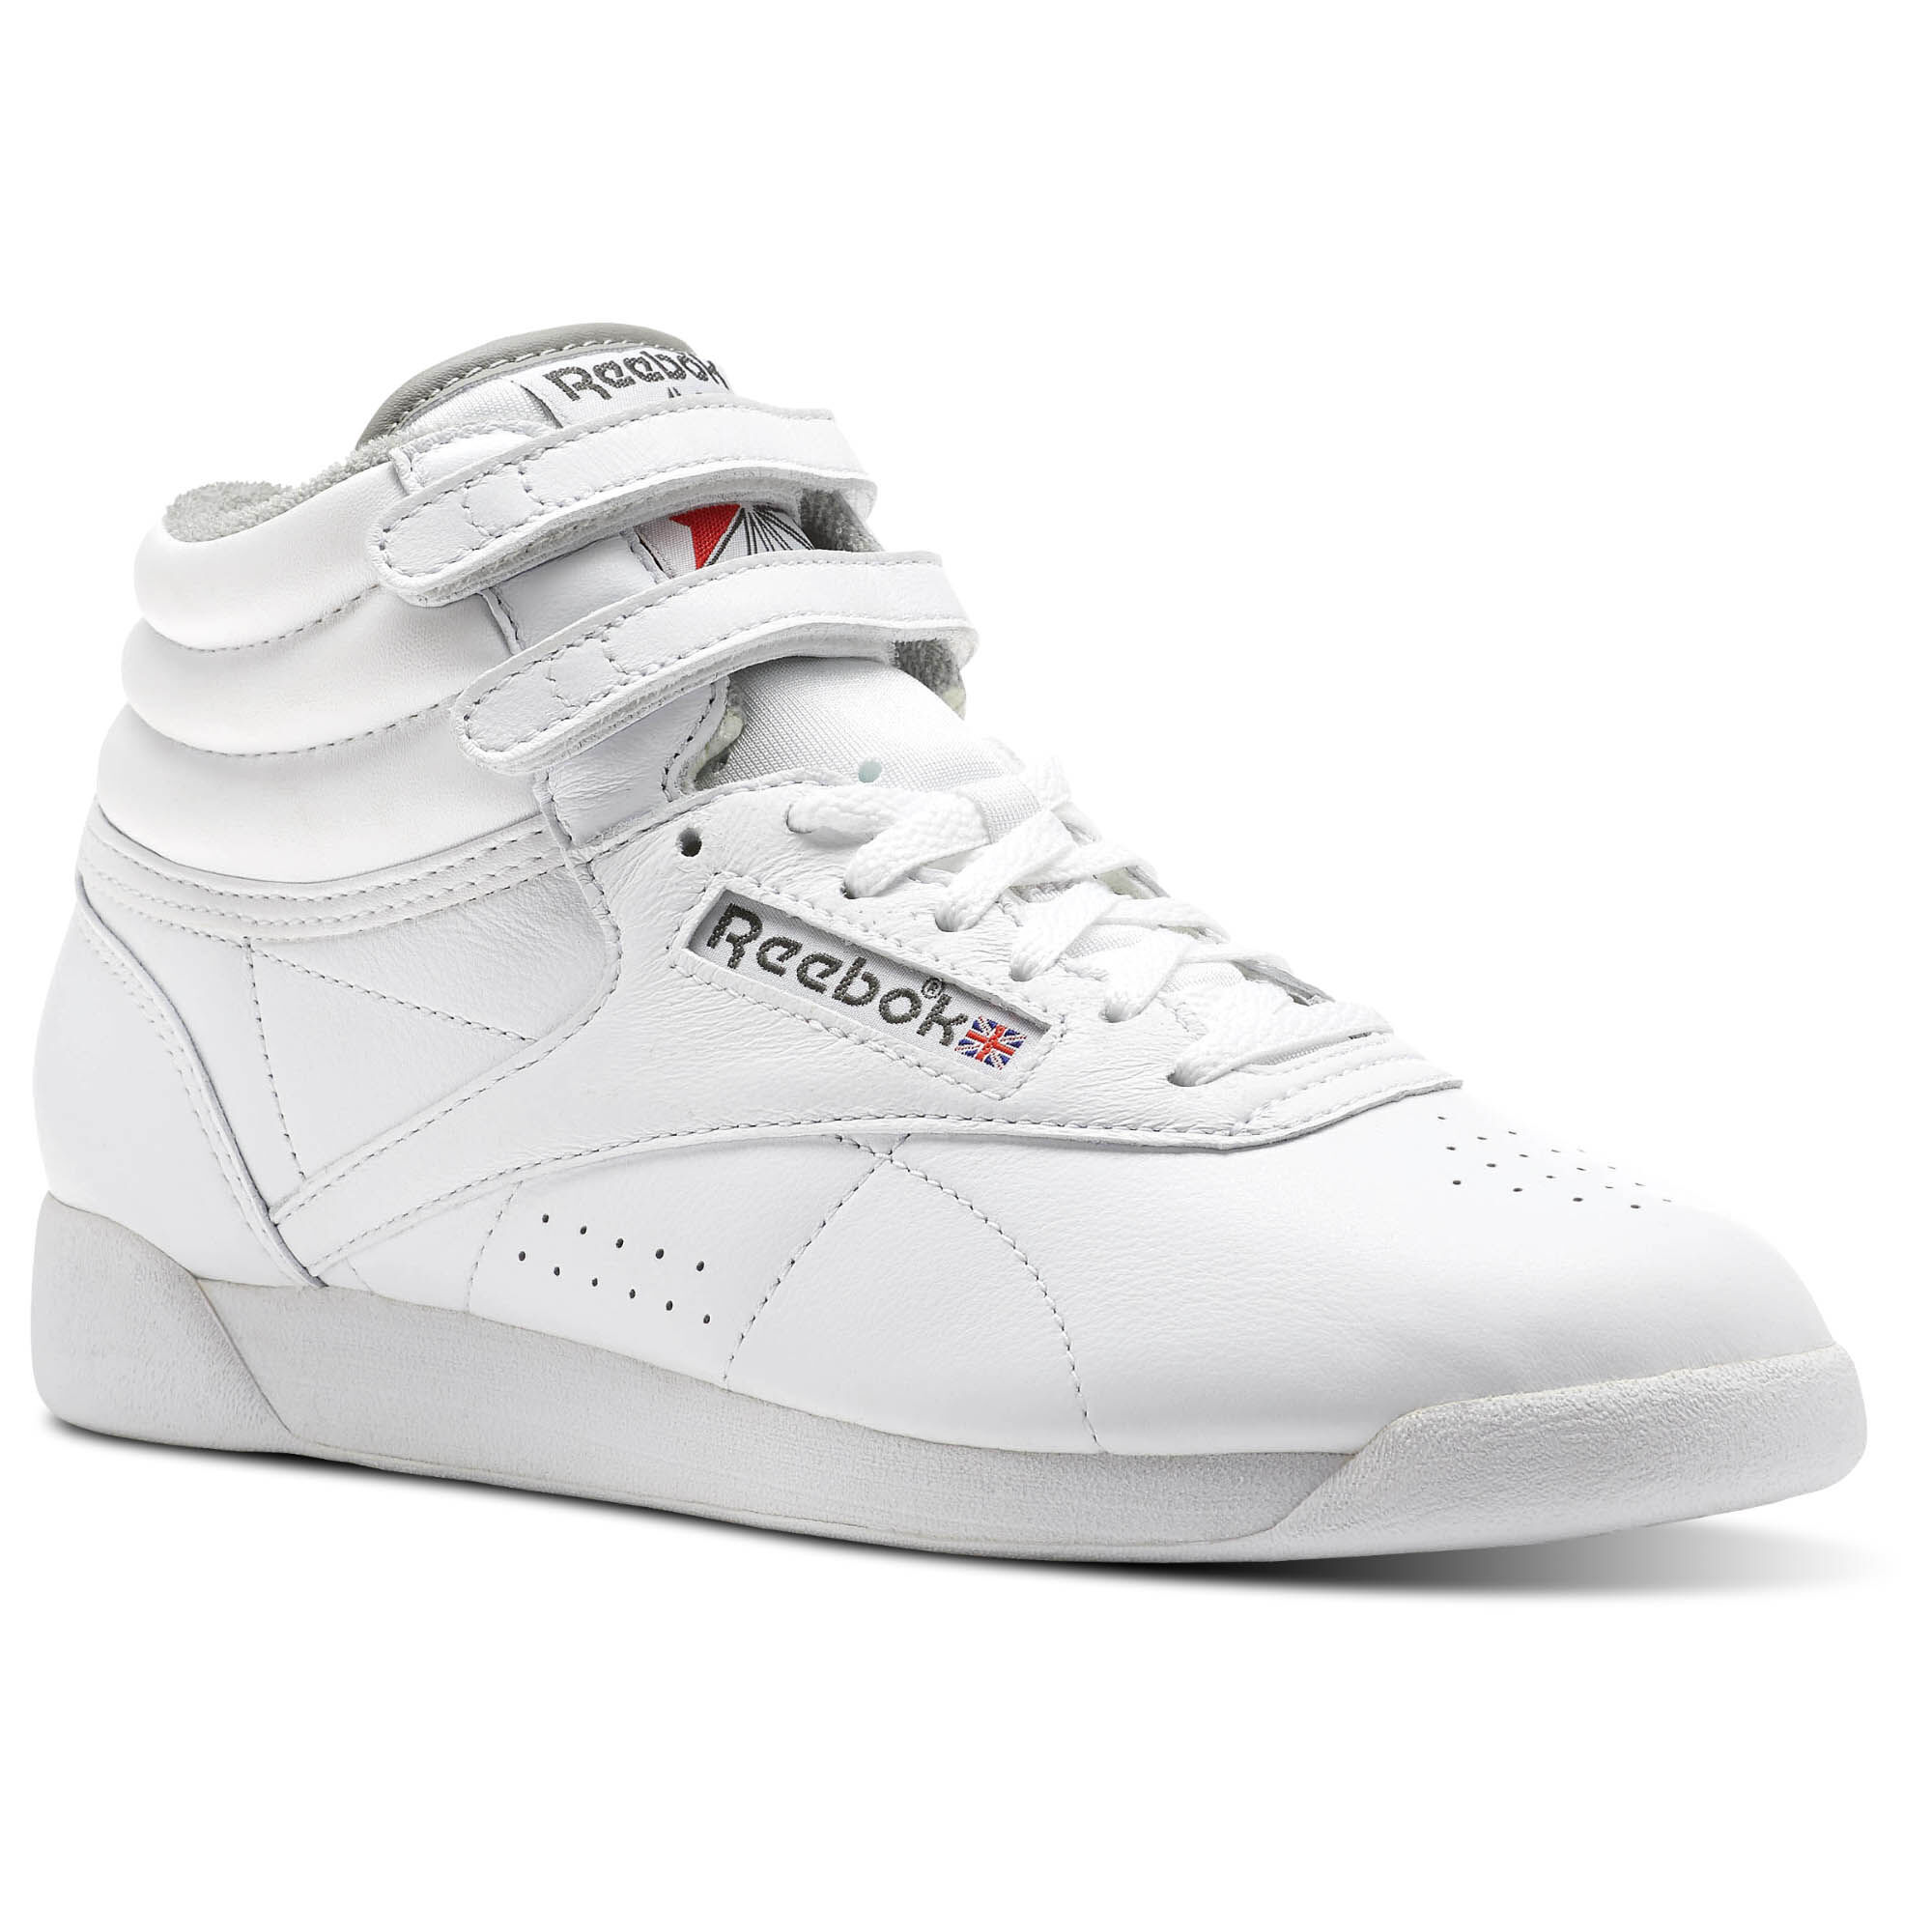 Reebok Freestyle Hi Leather Sneakers Gr. US 8